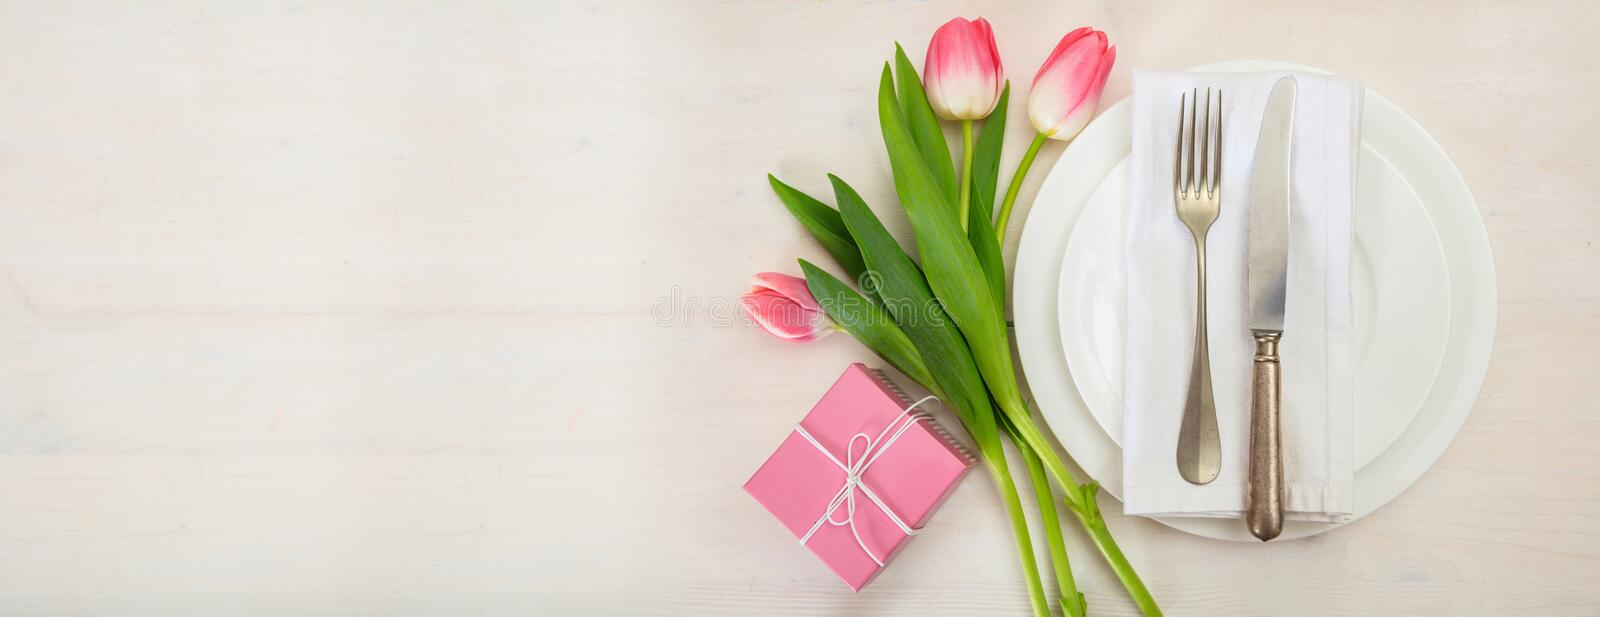 Valentines day table setting with pink tulips and a gift on white wooden background. Top view, copy space, banner royalty free stock images